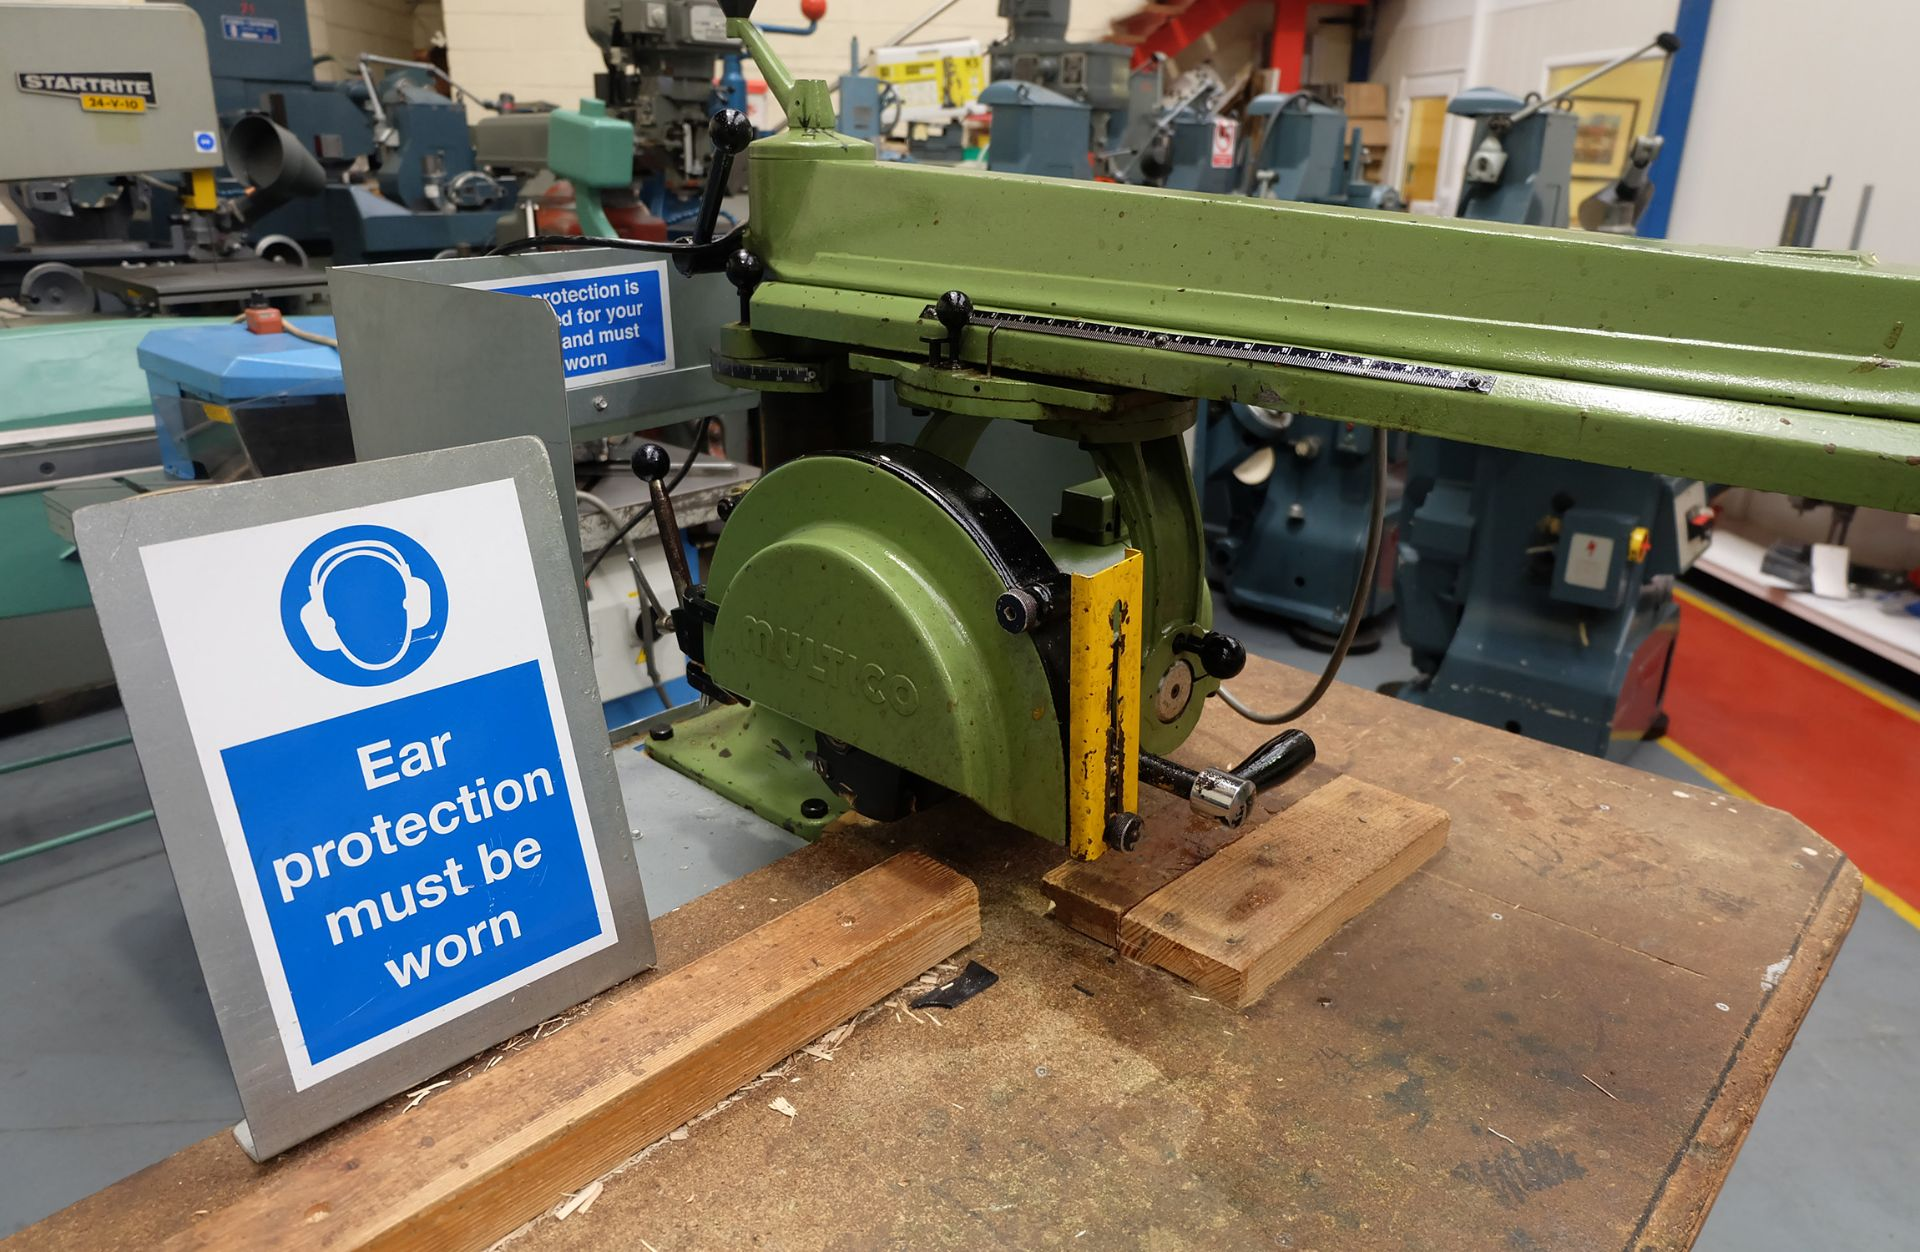 Multico Model C2/3 Radial Wood Saw. Swivelling/Tilting Cross Cut Timber Sawing Machine. - Image 3 of 5